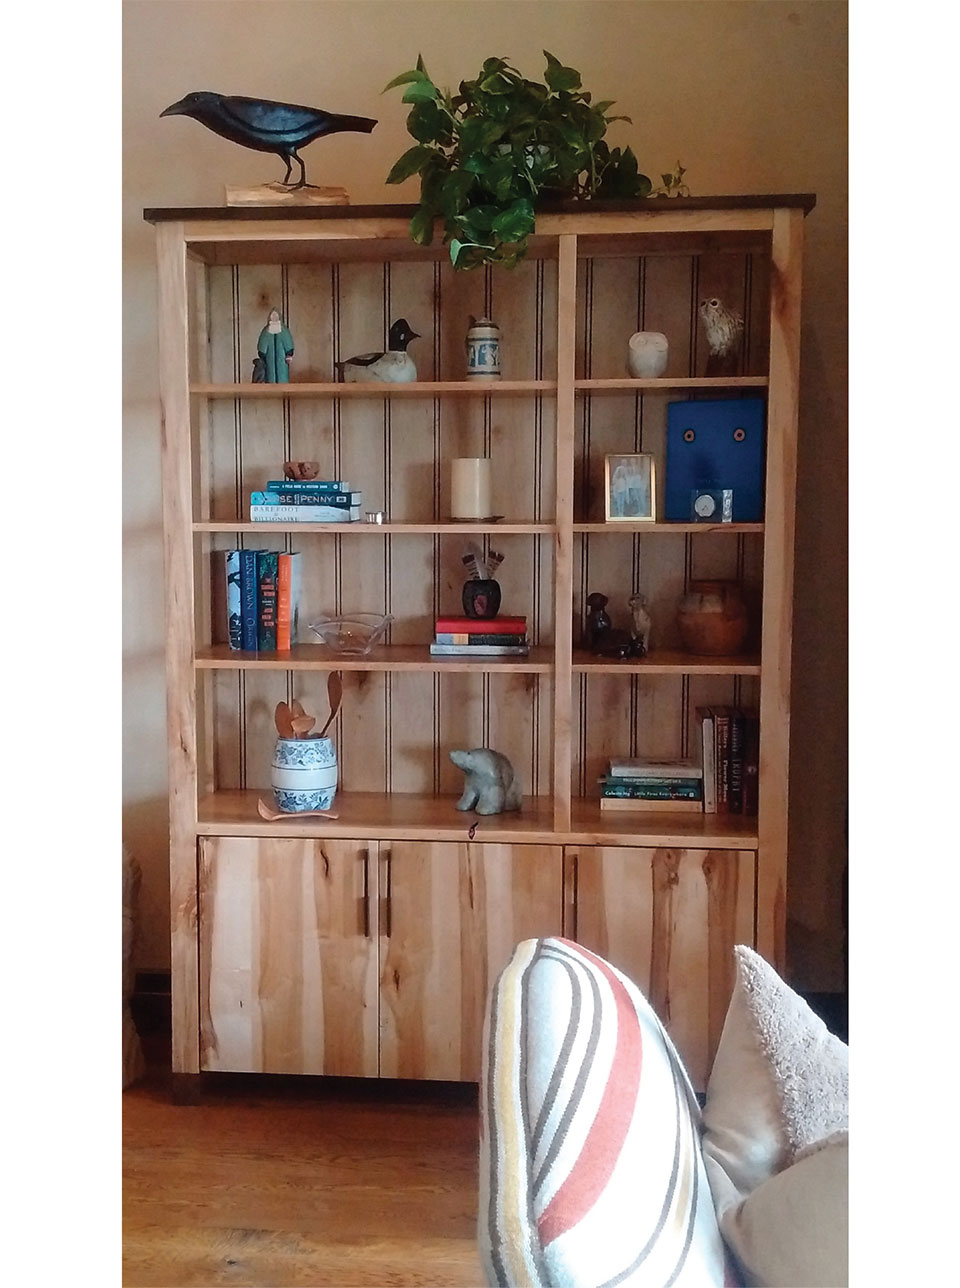 Working with Wood in the Modern West- Jackson Hole Bookshelf